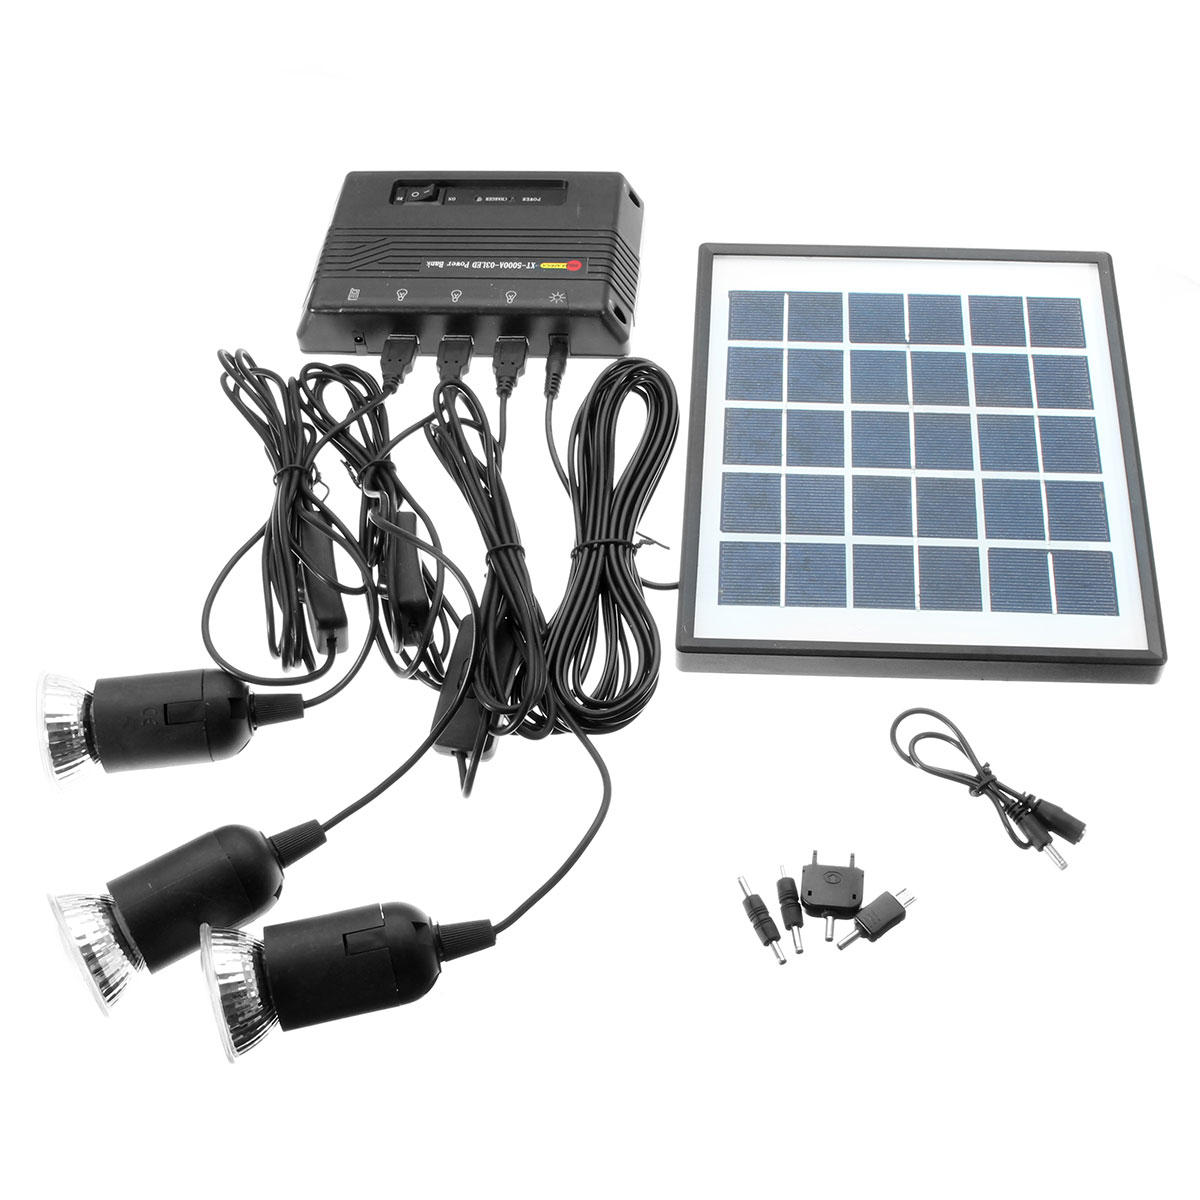 Diy Power Bank Ac 6v 4w Diy Outdoor Solar Panel With Power Bank 3 3 7v 1w Led Lamp For Usb Charging